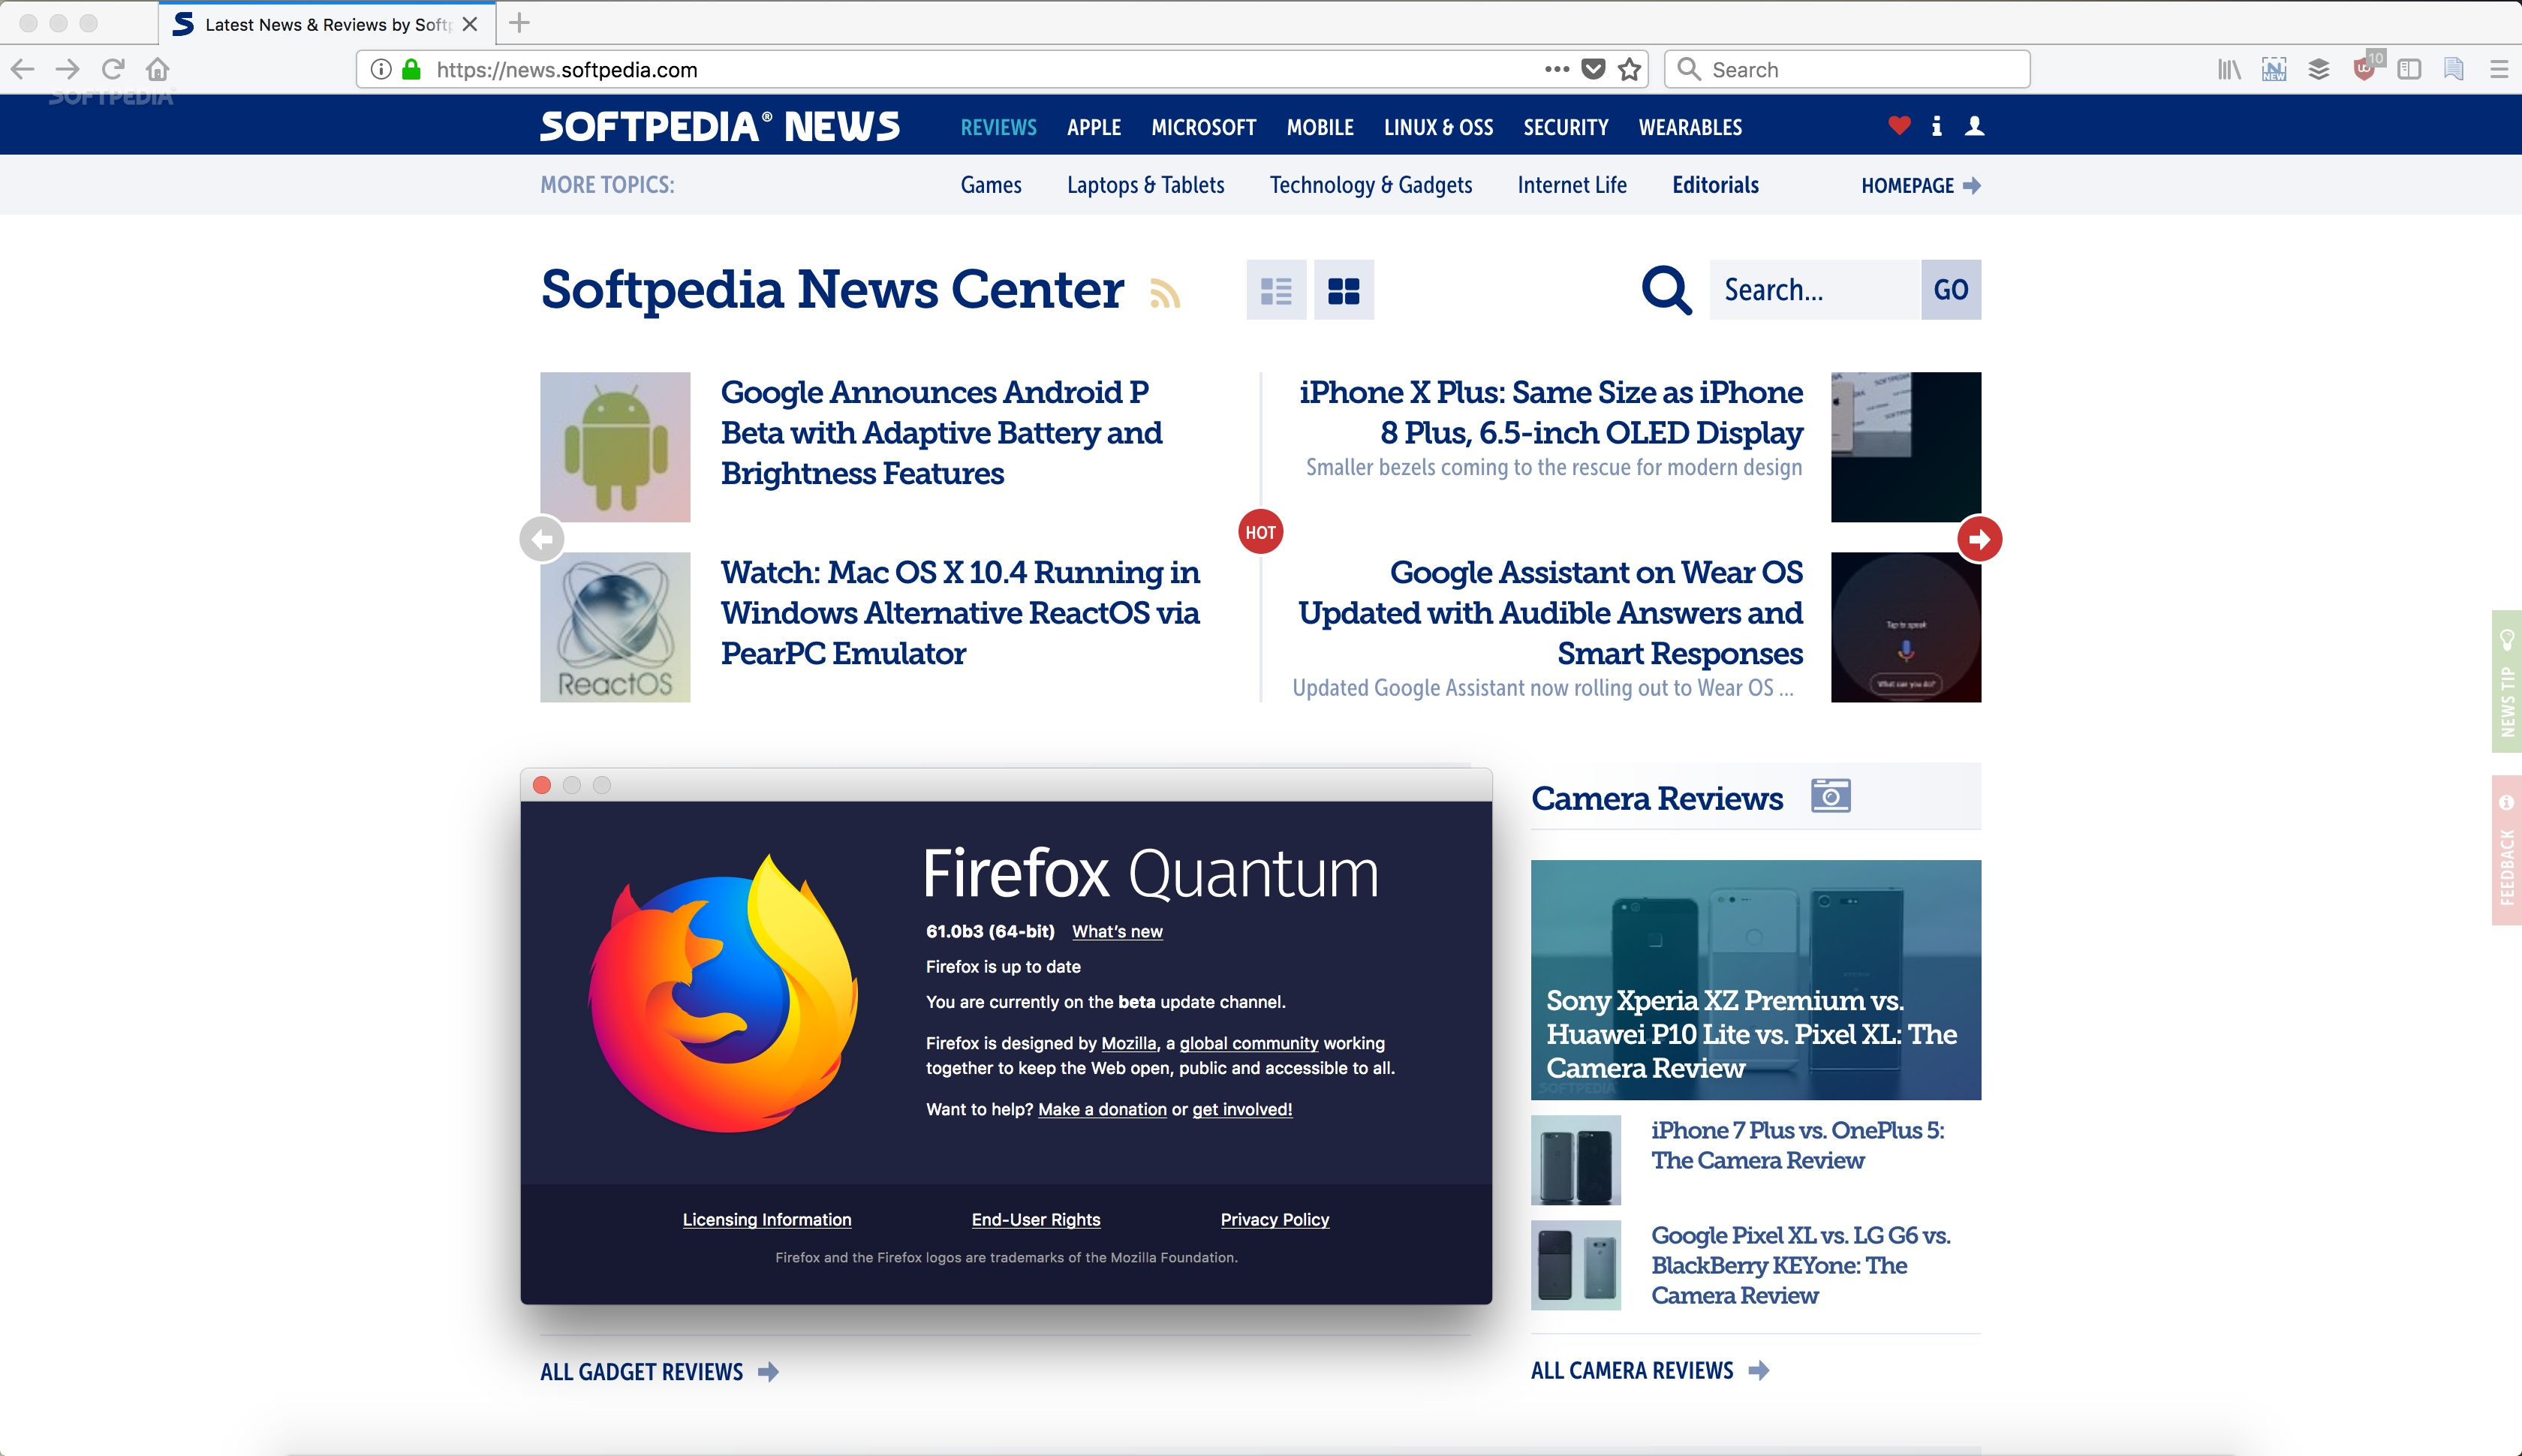 Firefox 61 Enters Development with Faster Tab Switching on